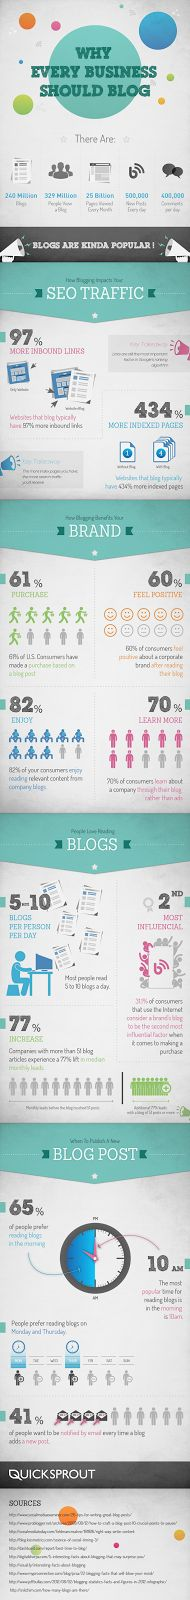 Why Every Business Should Blog - http://www.infographics4marketing.net/2014/01/why-every-business-should-blog.html